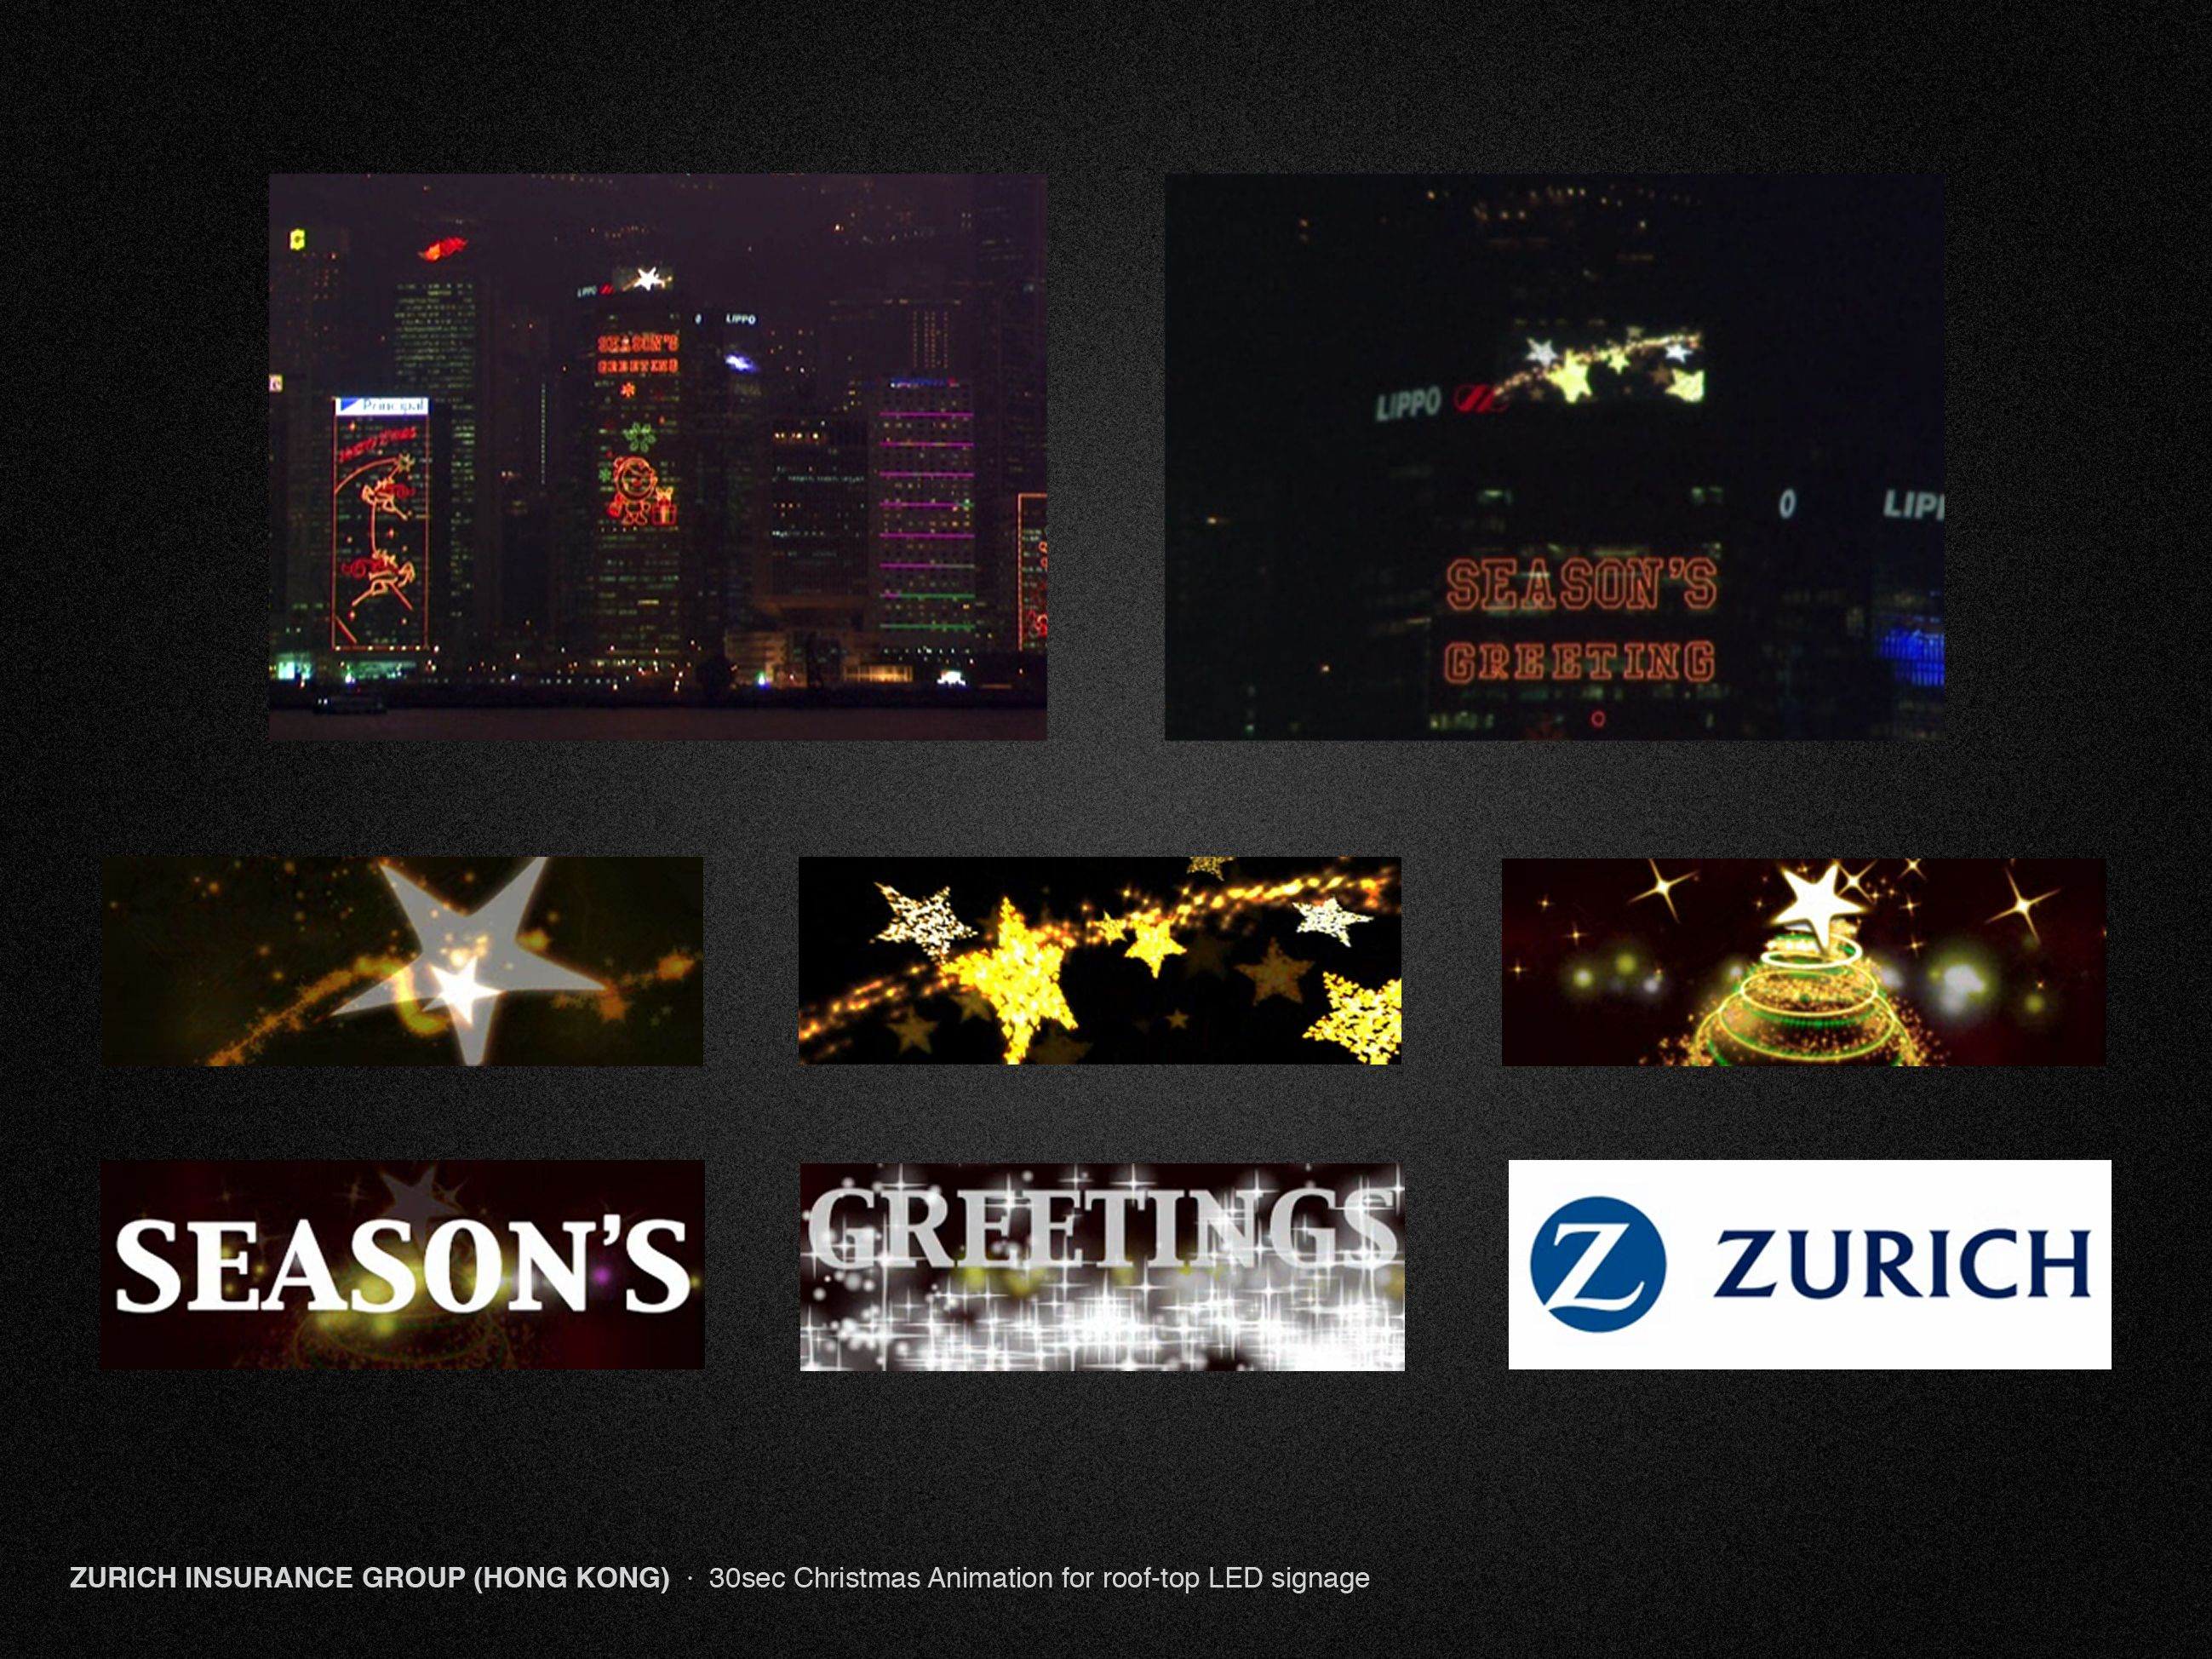 Zurich Insurance Group Hong Kong 30sec Christmas Animation For